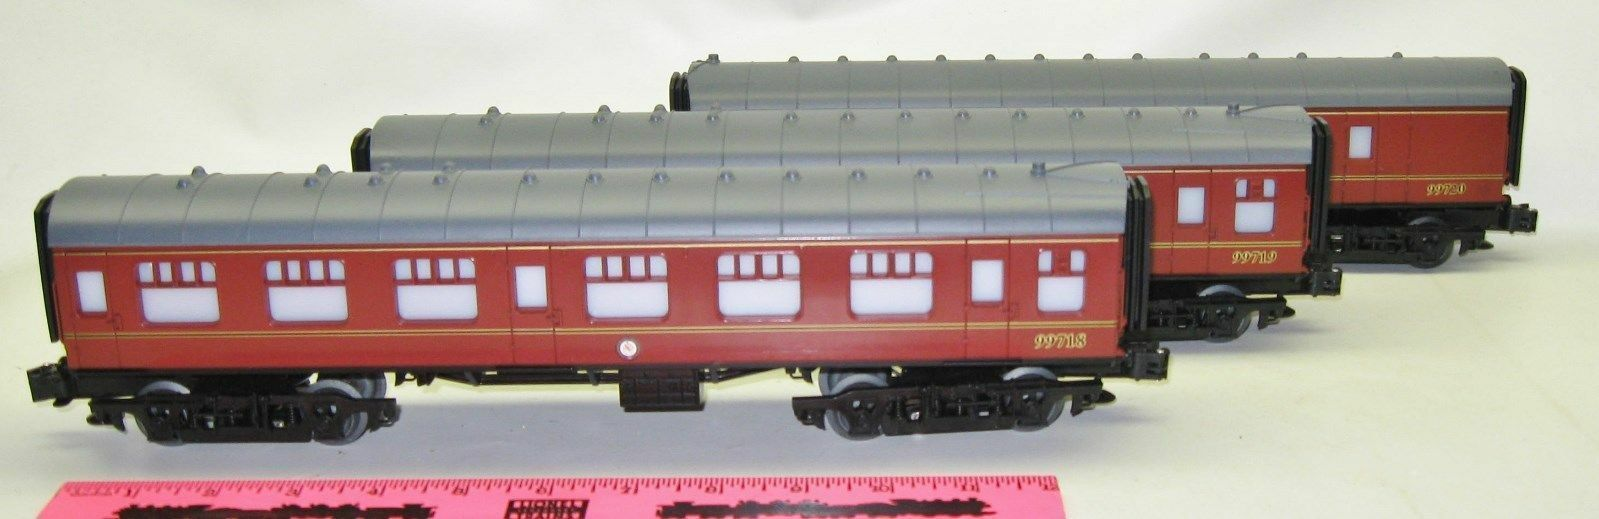 New Lionel Harry Potter passenger car set